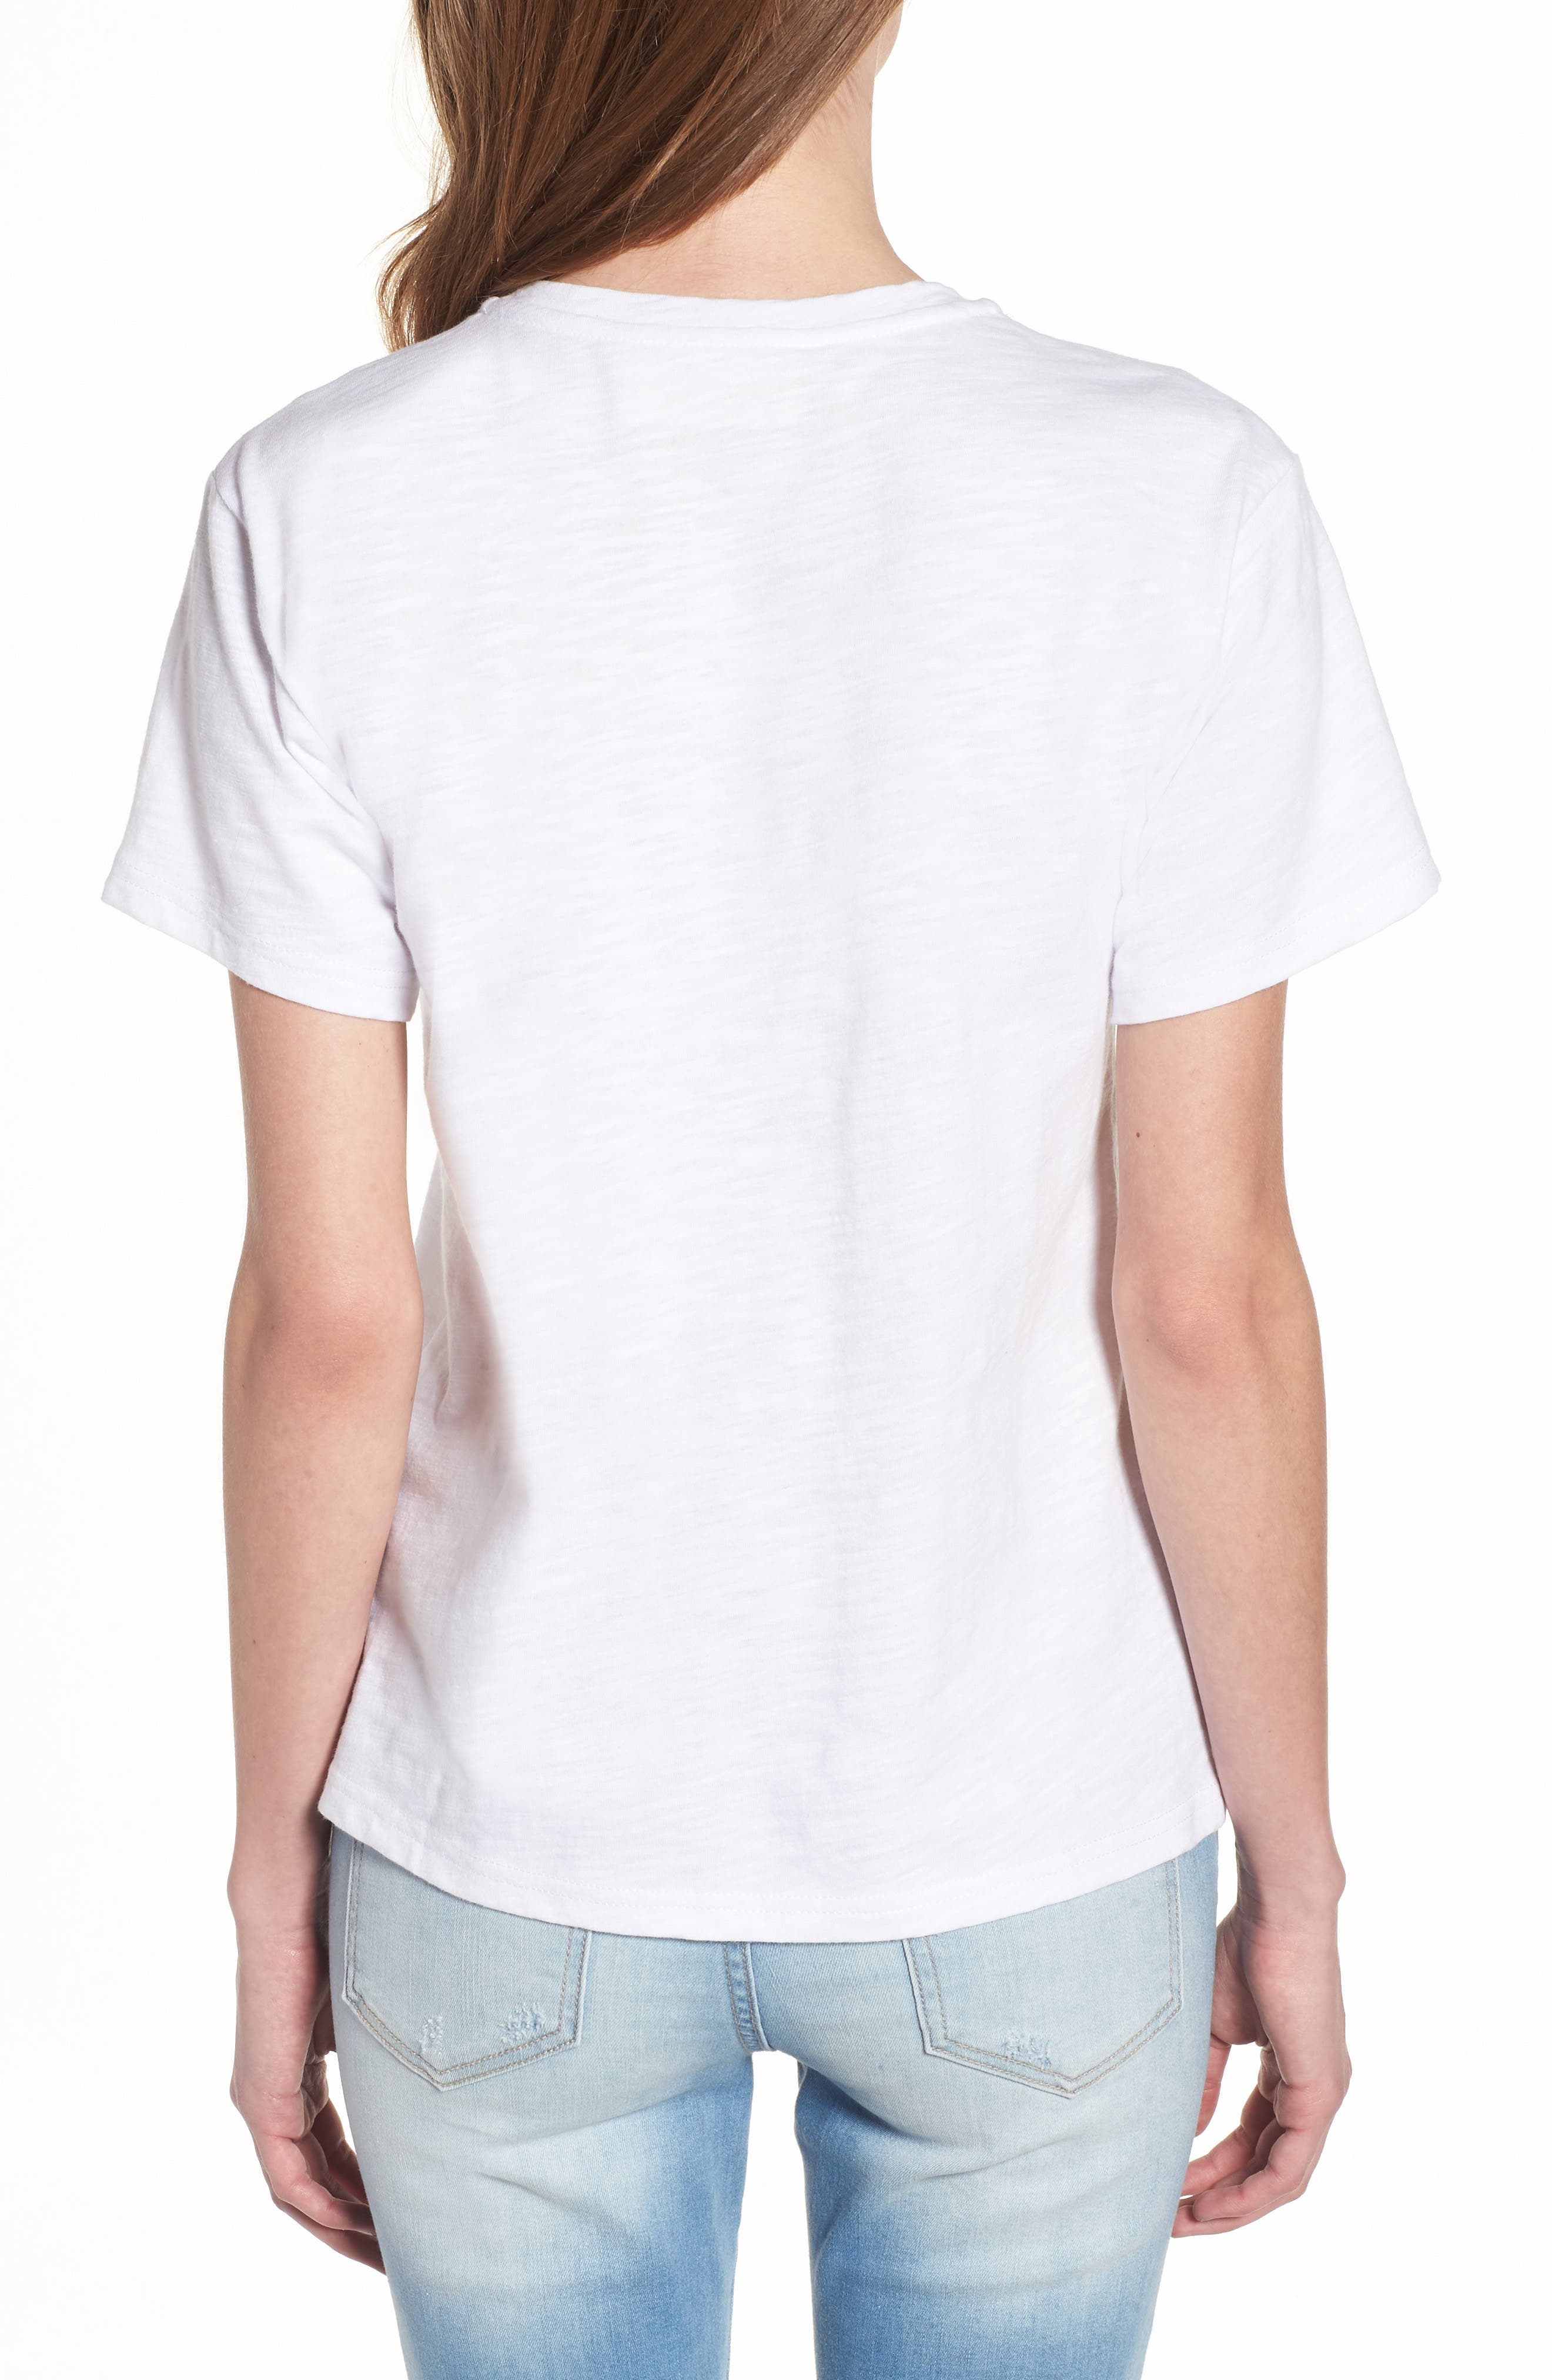 Sleeping Embroidered Tee,                             Alternate thumbnail 2, color,                             White